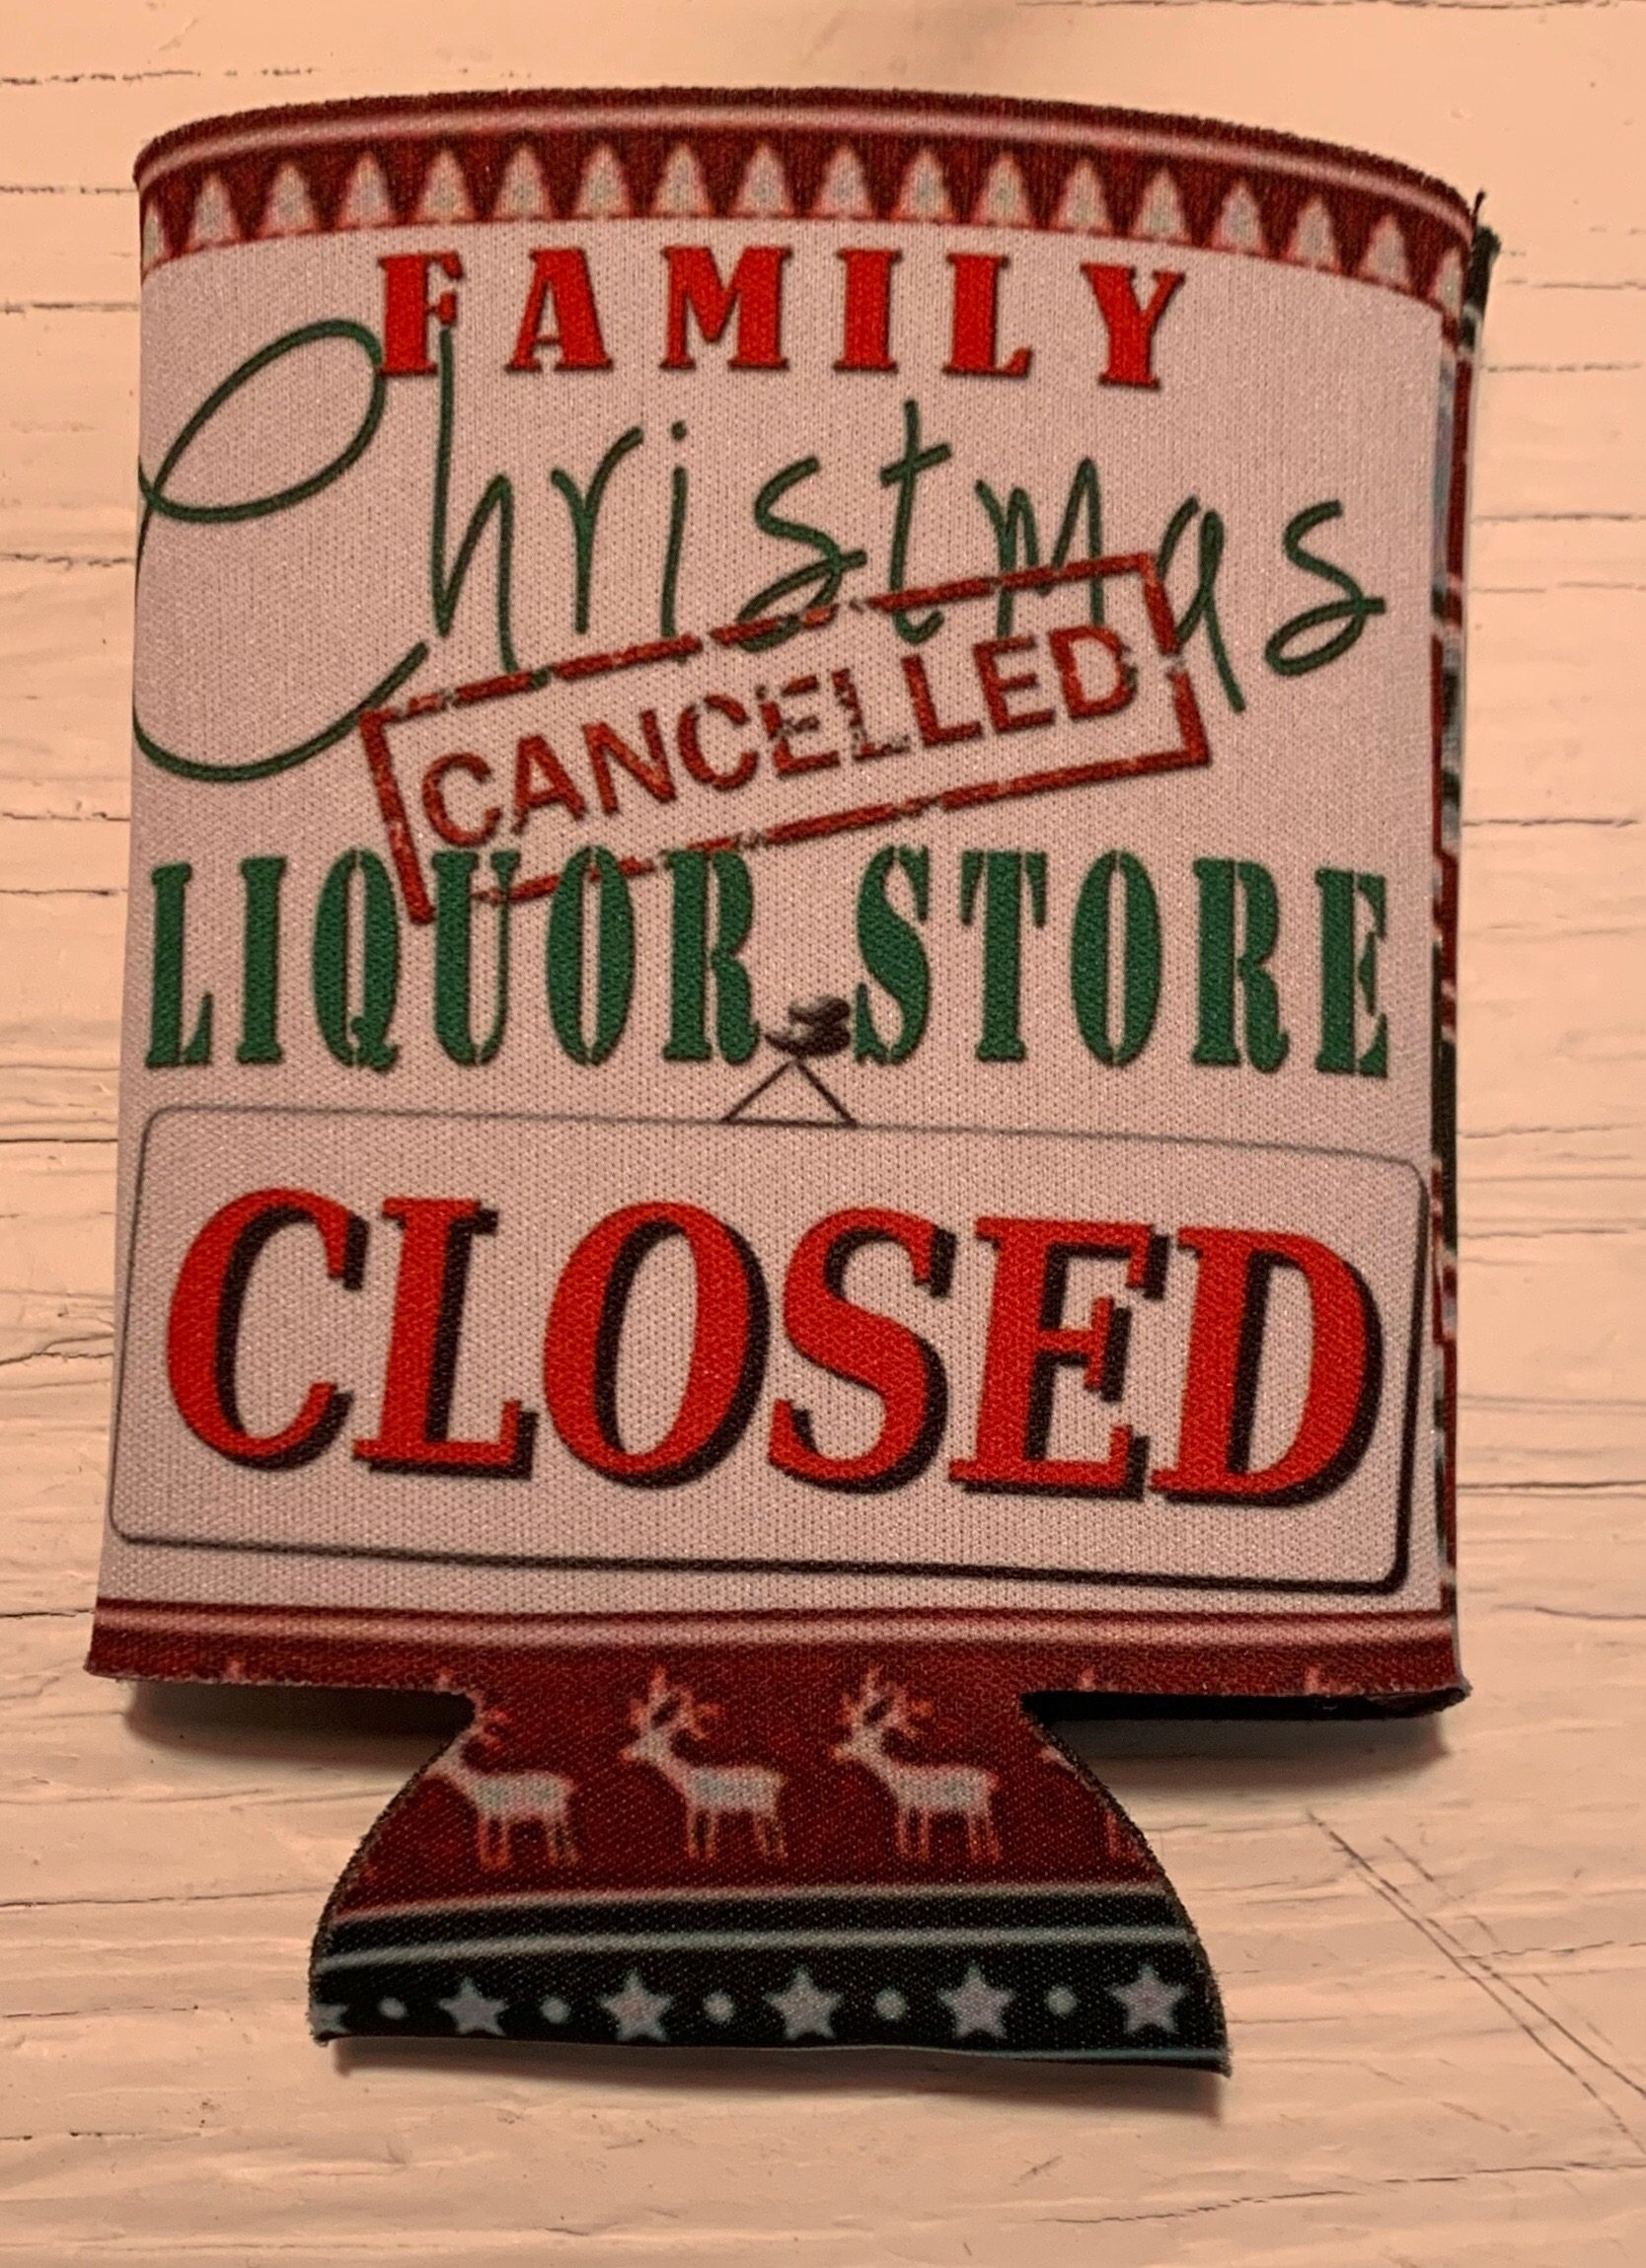 Family Christmas Cancelled Liquor Store Closed Koozie